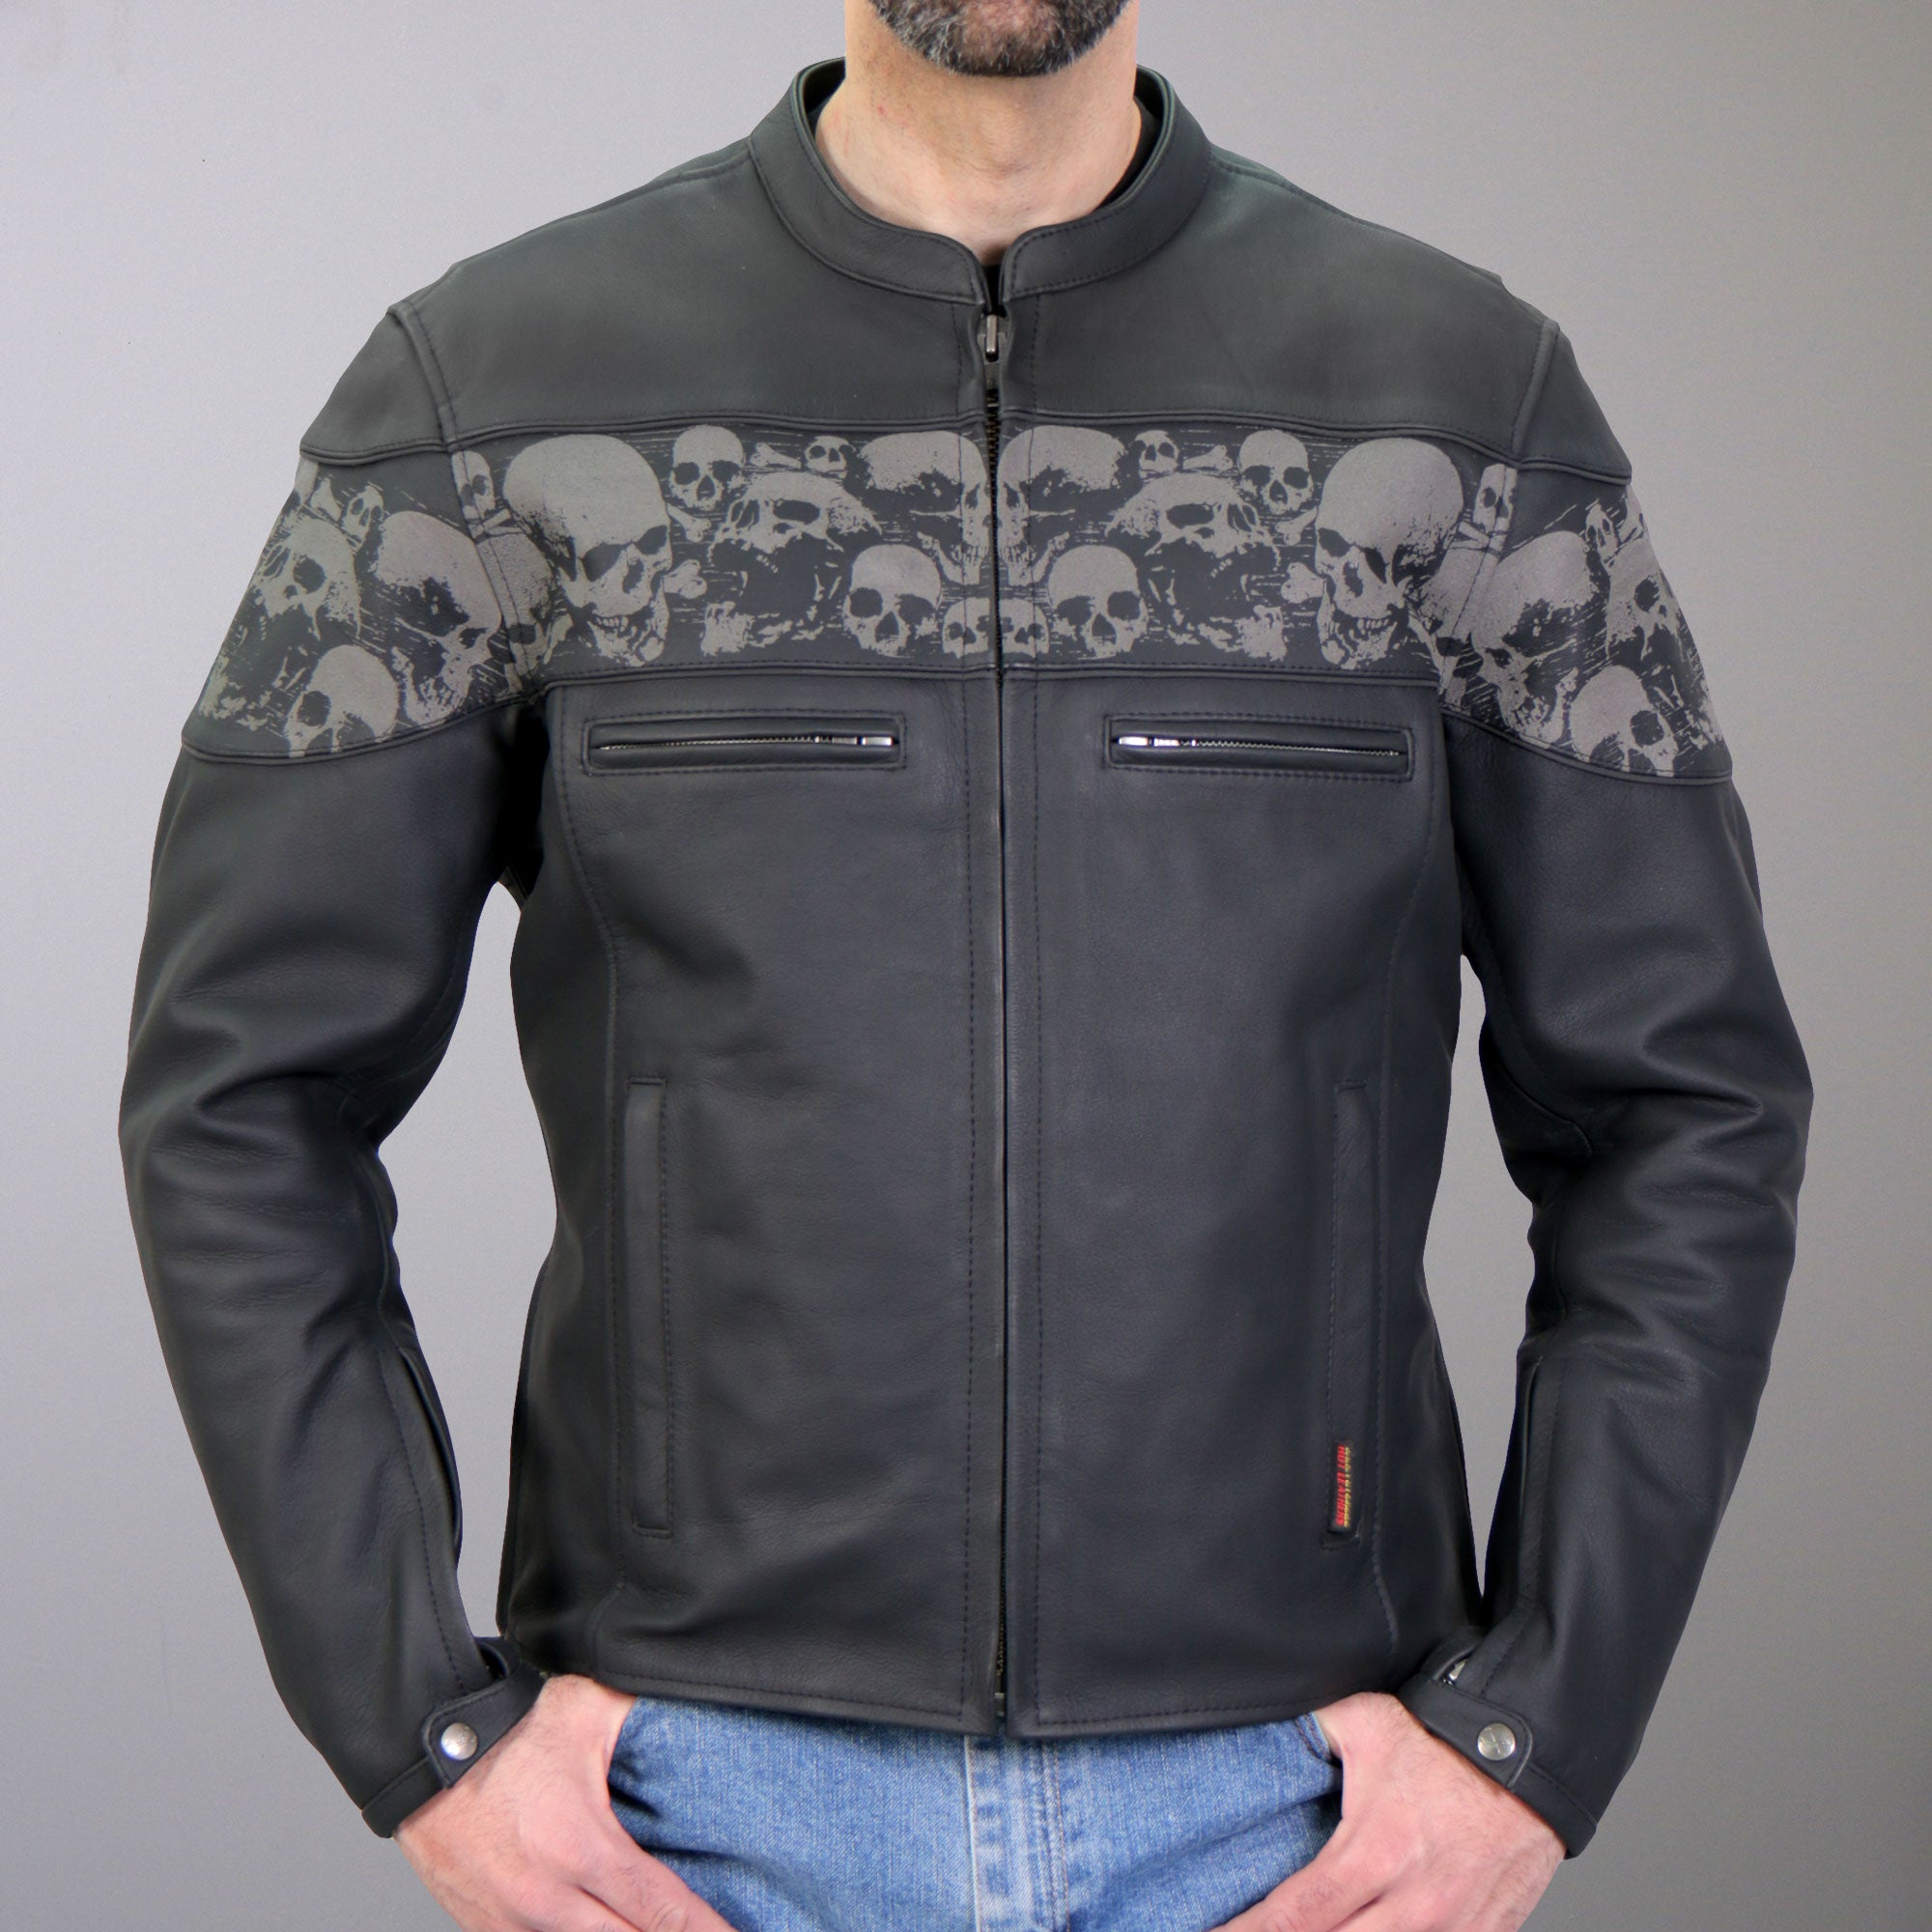 Hot Leathers Reflective Skull Printed Leather Jacket With Concealed Carry Pockets